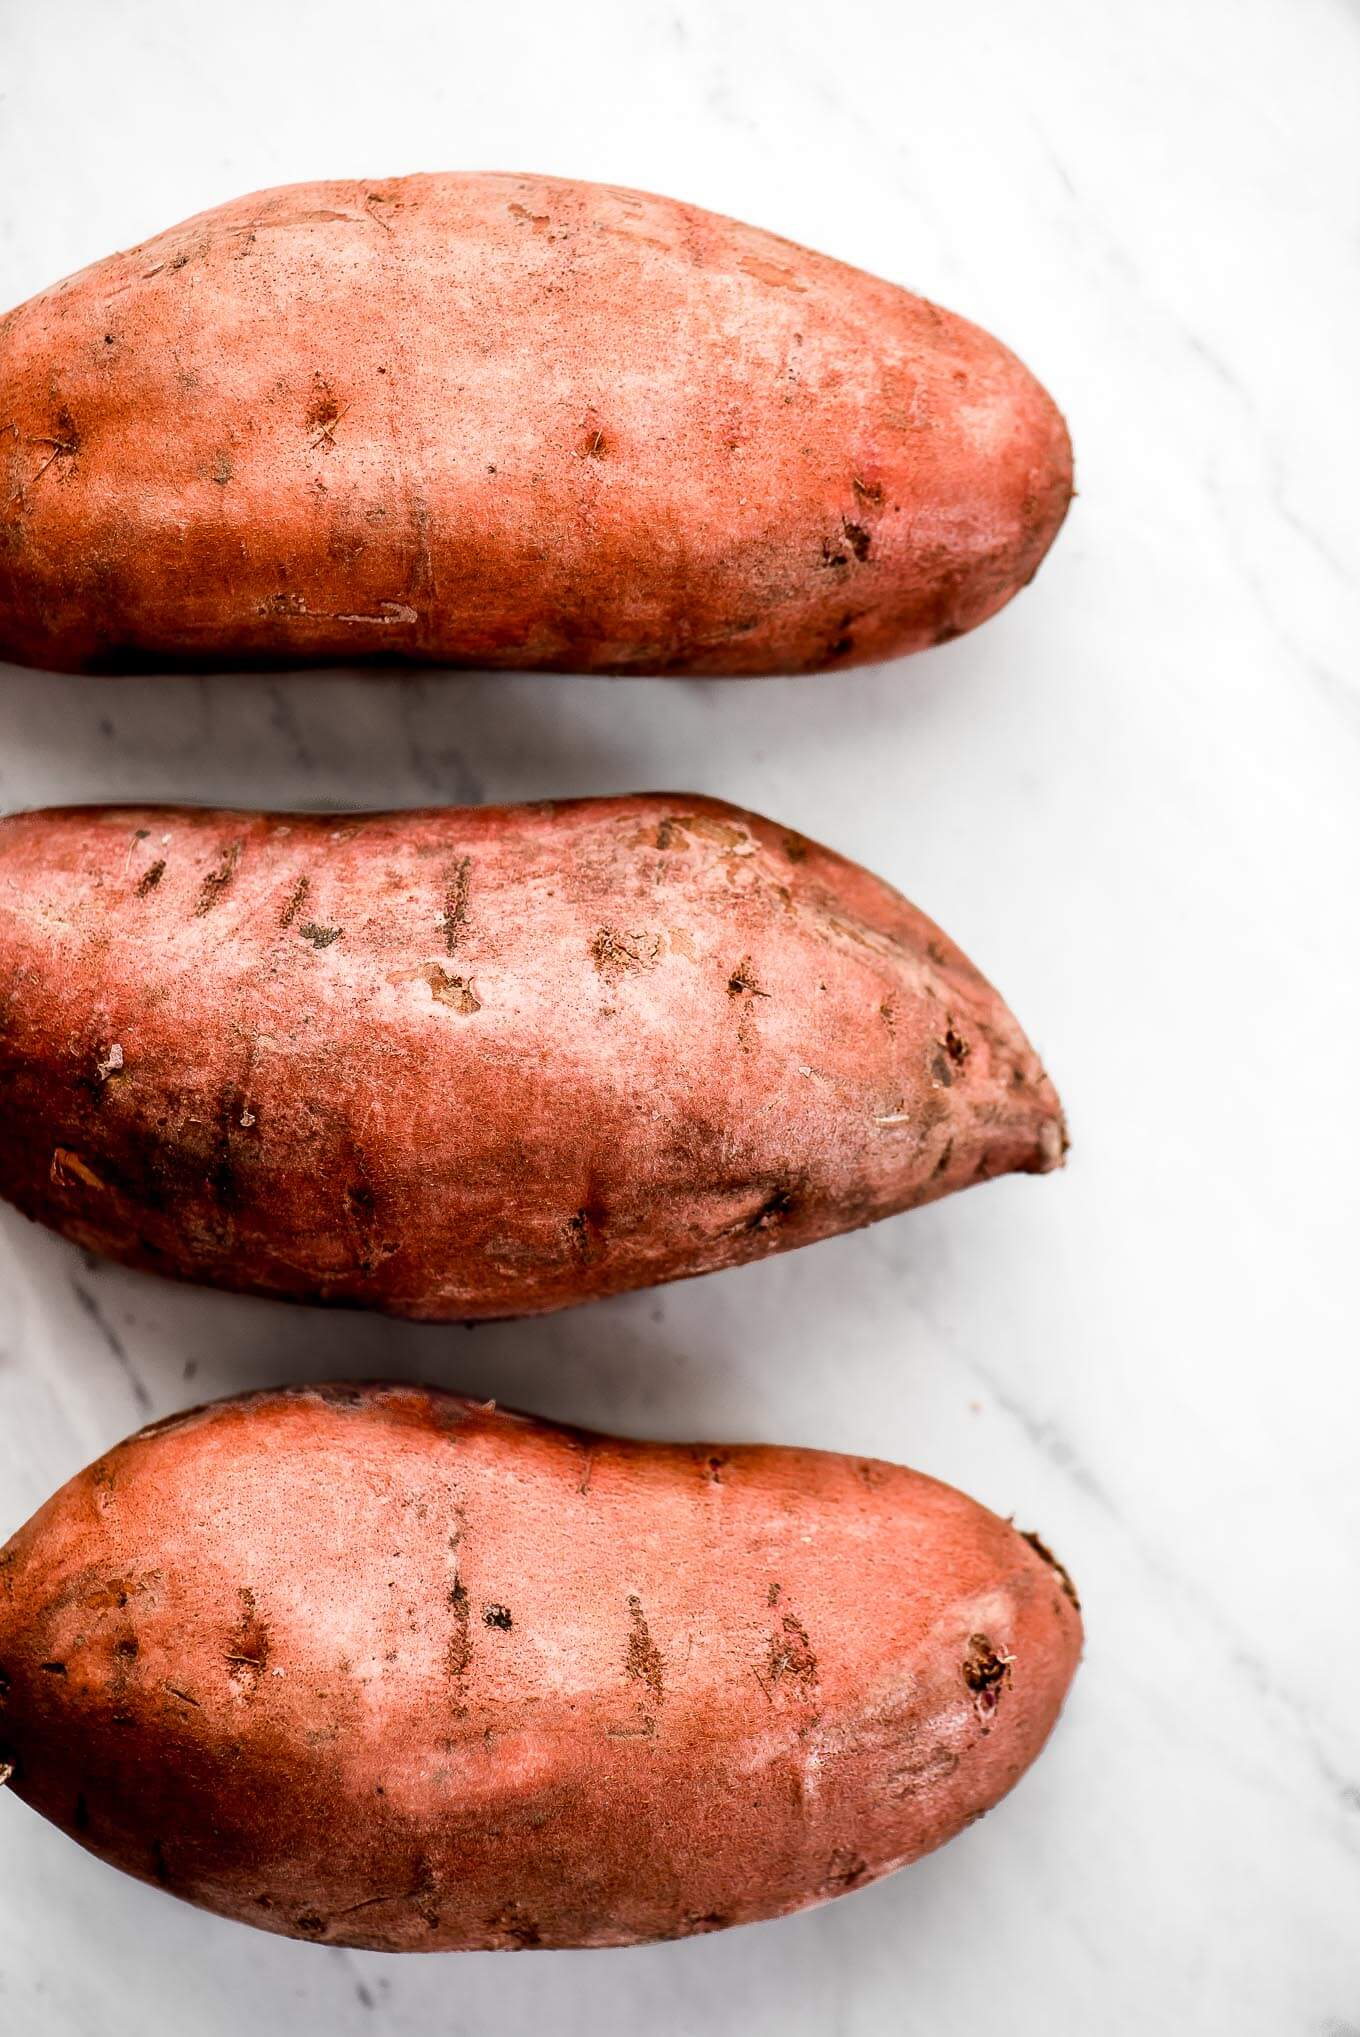 Three raw sweet potatoes.